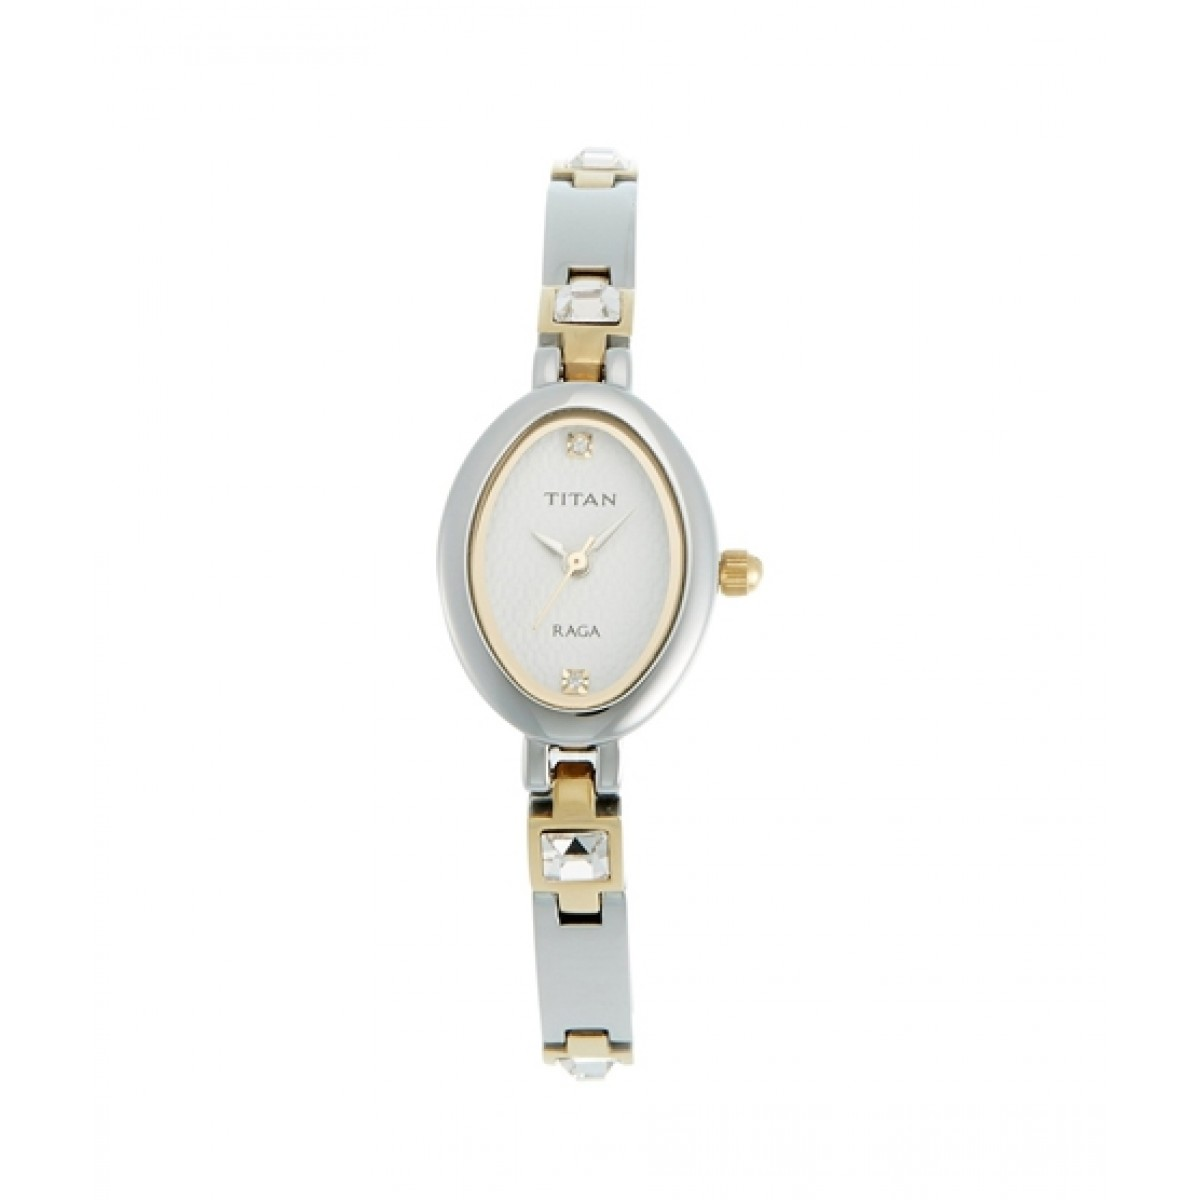 Titan Raga Analog Women's Watch Silver (9717BM01)